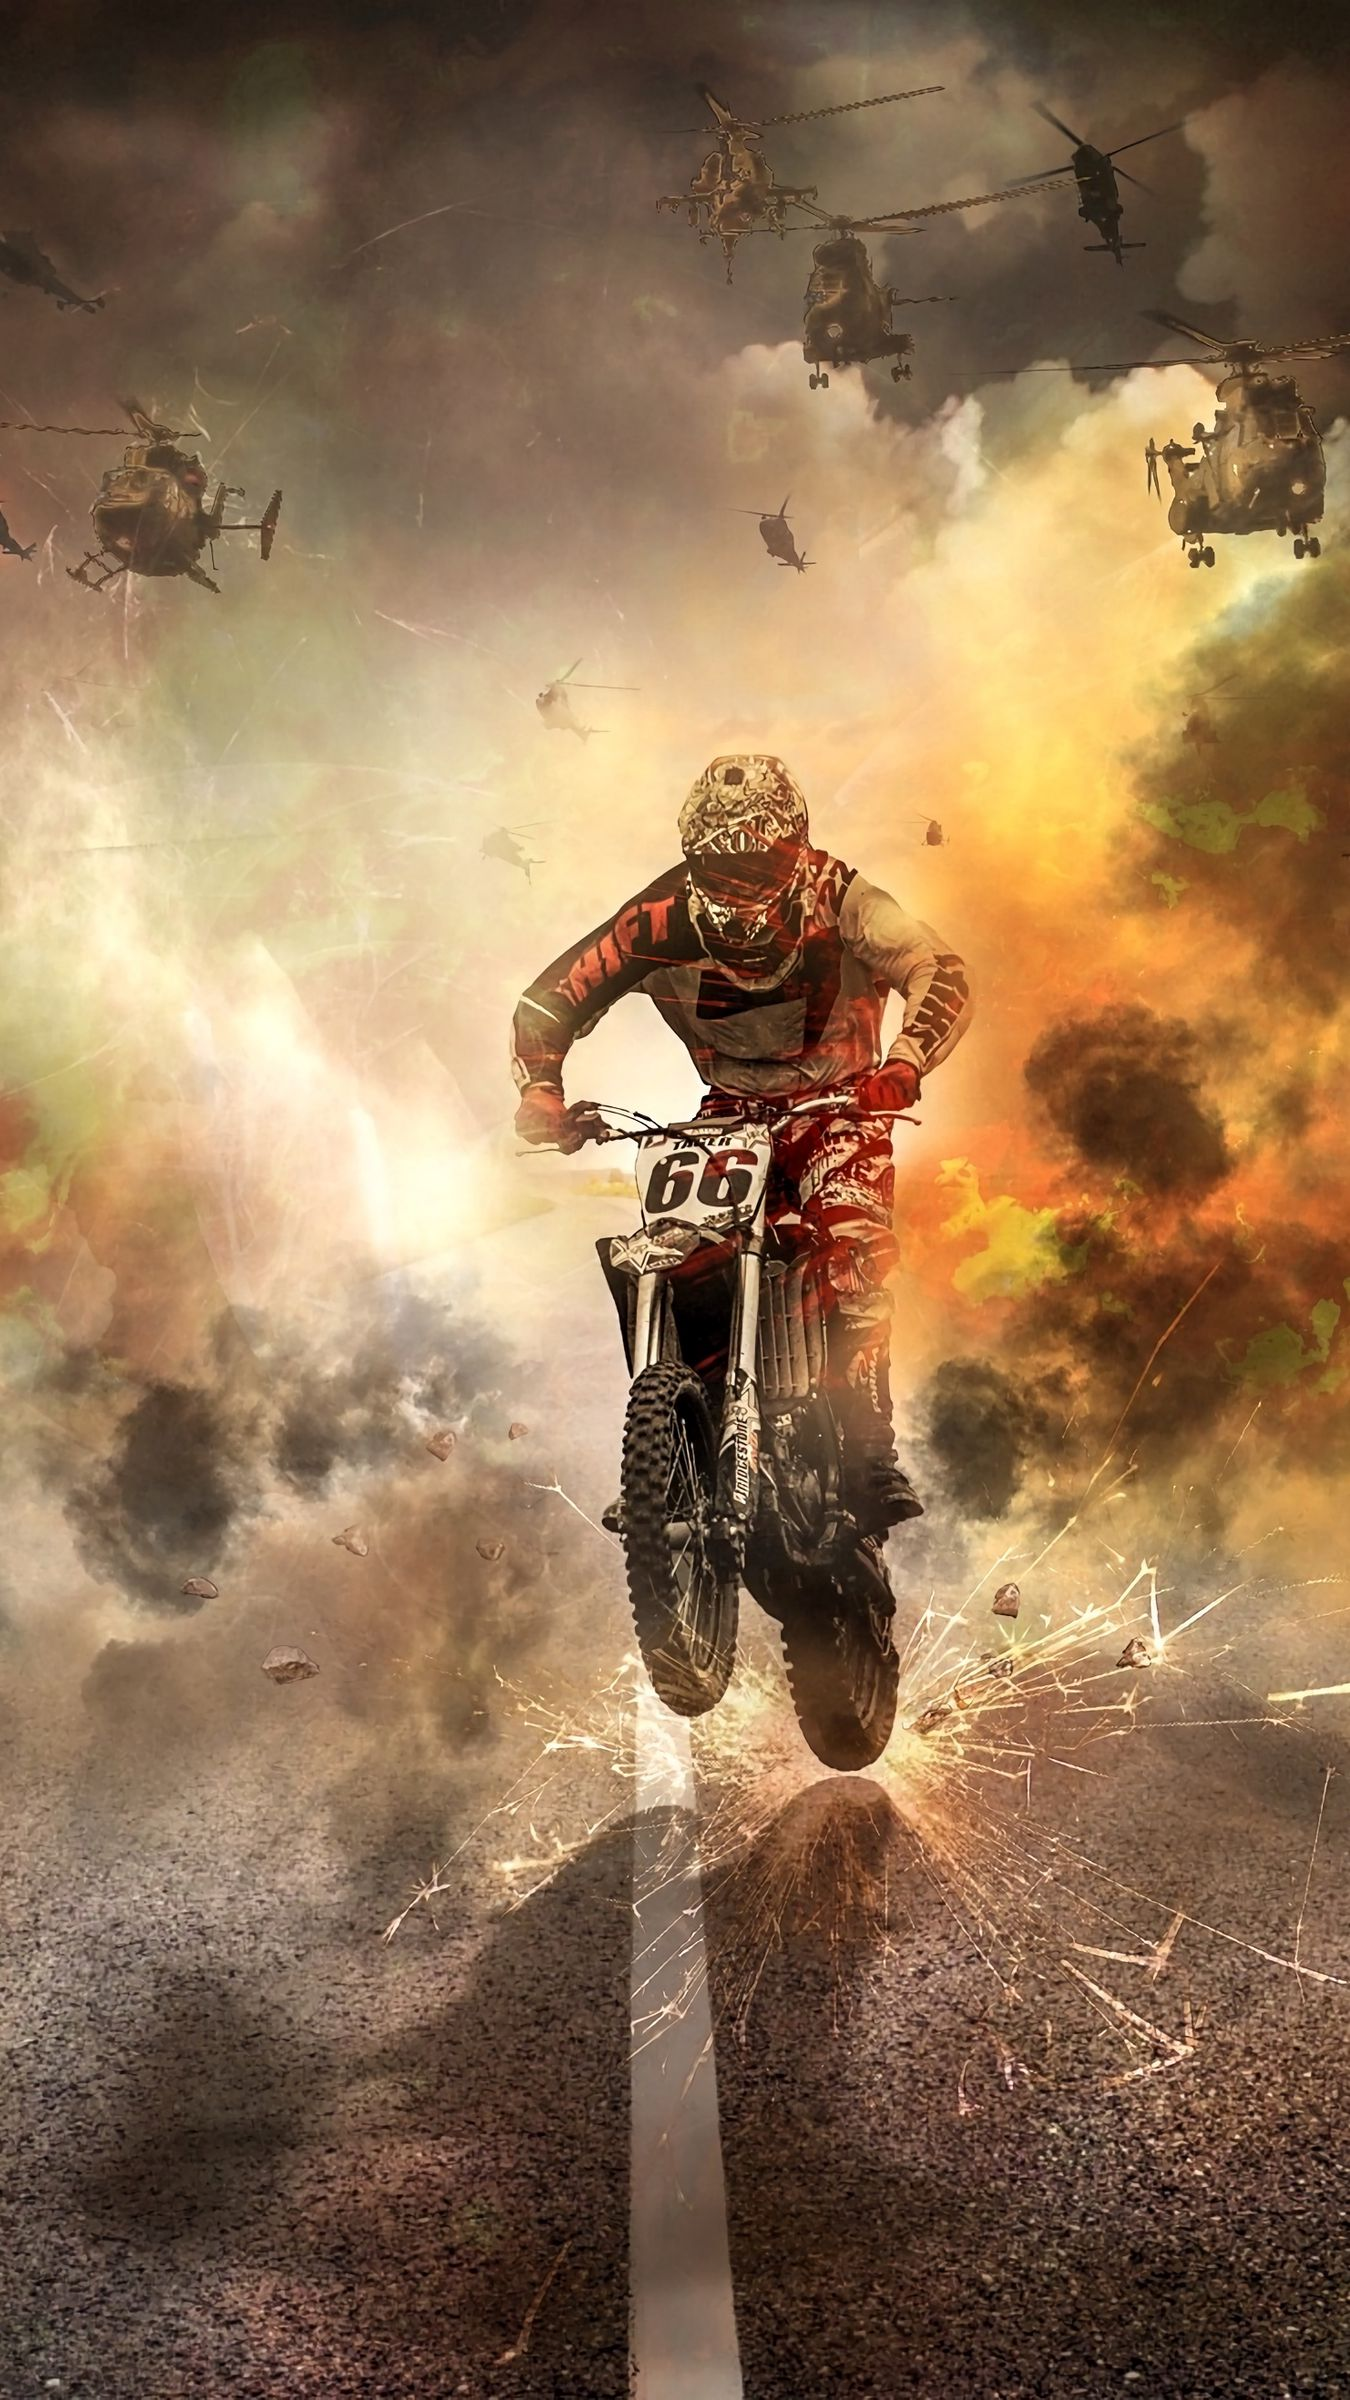 1350x2400 Wallpaper motorcyclist, motorcycle, helicopters, sparks, fire, road